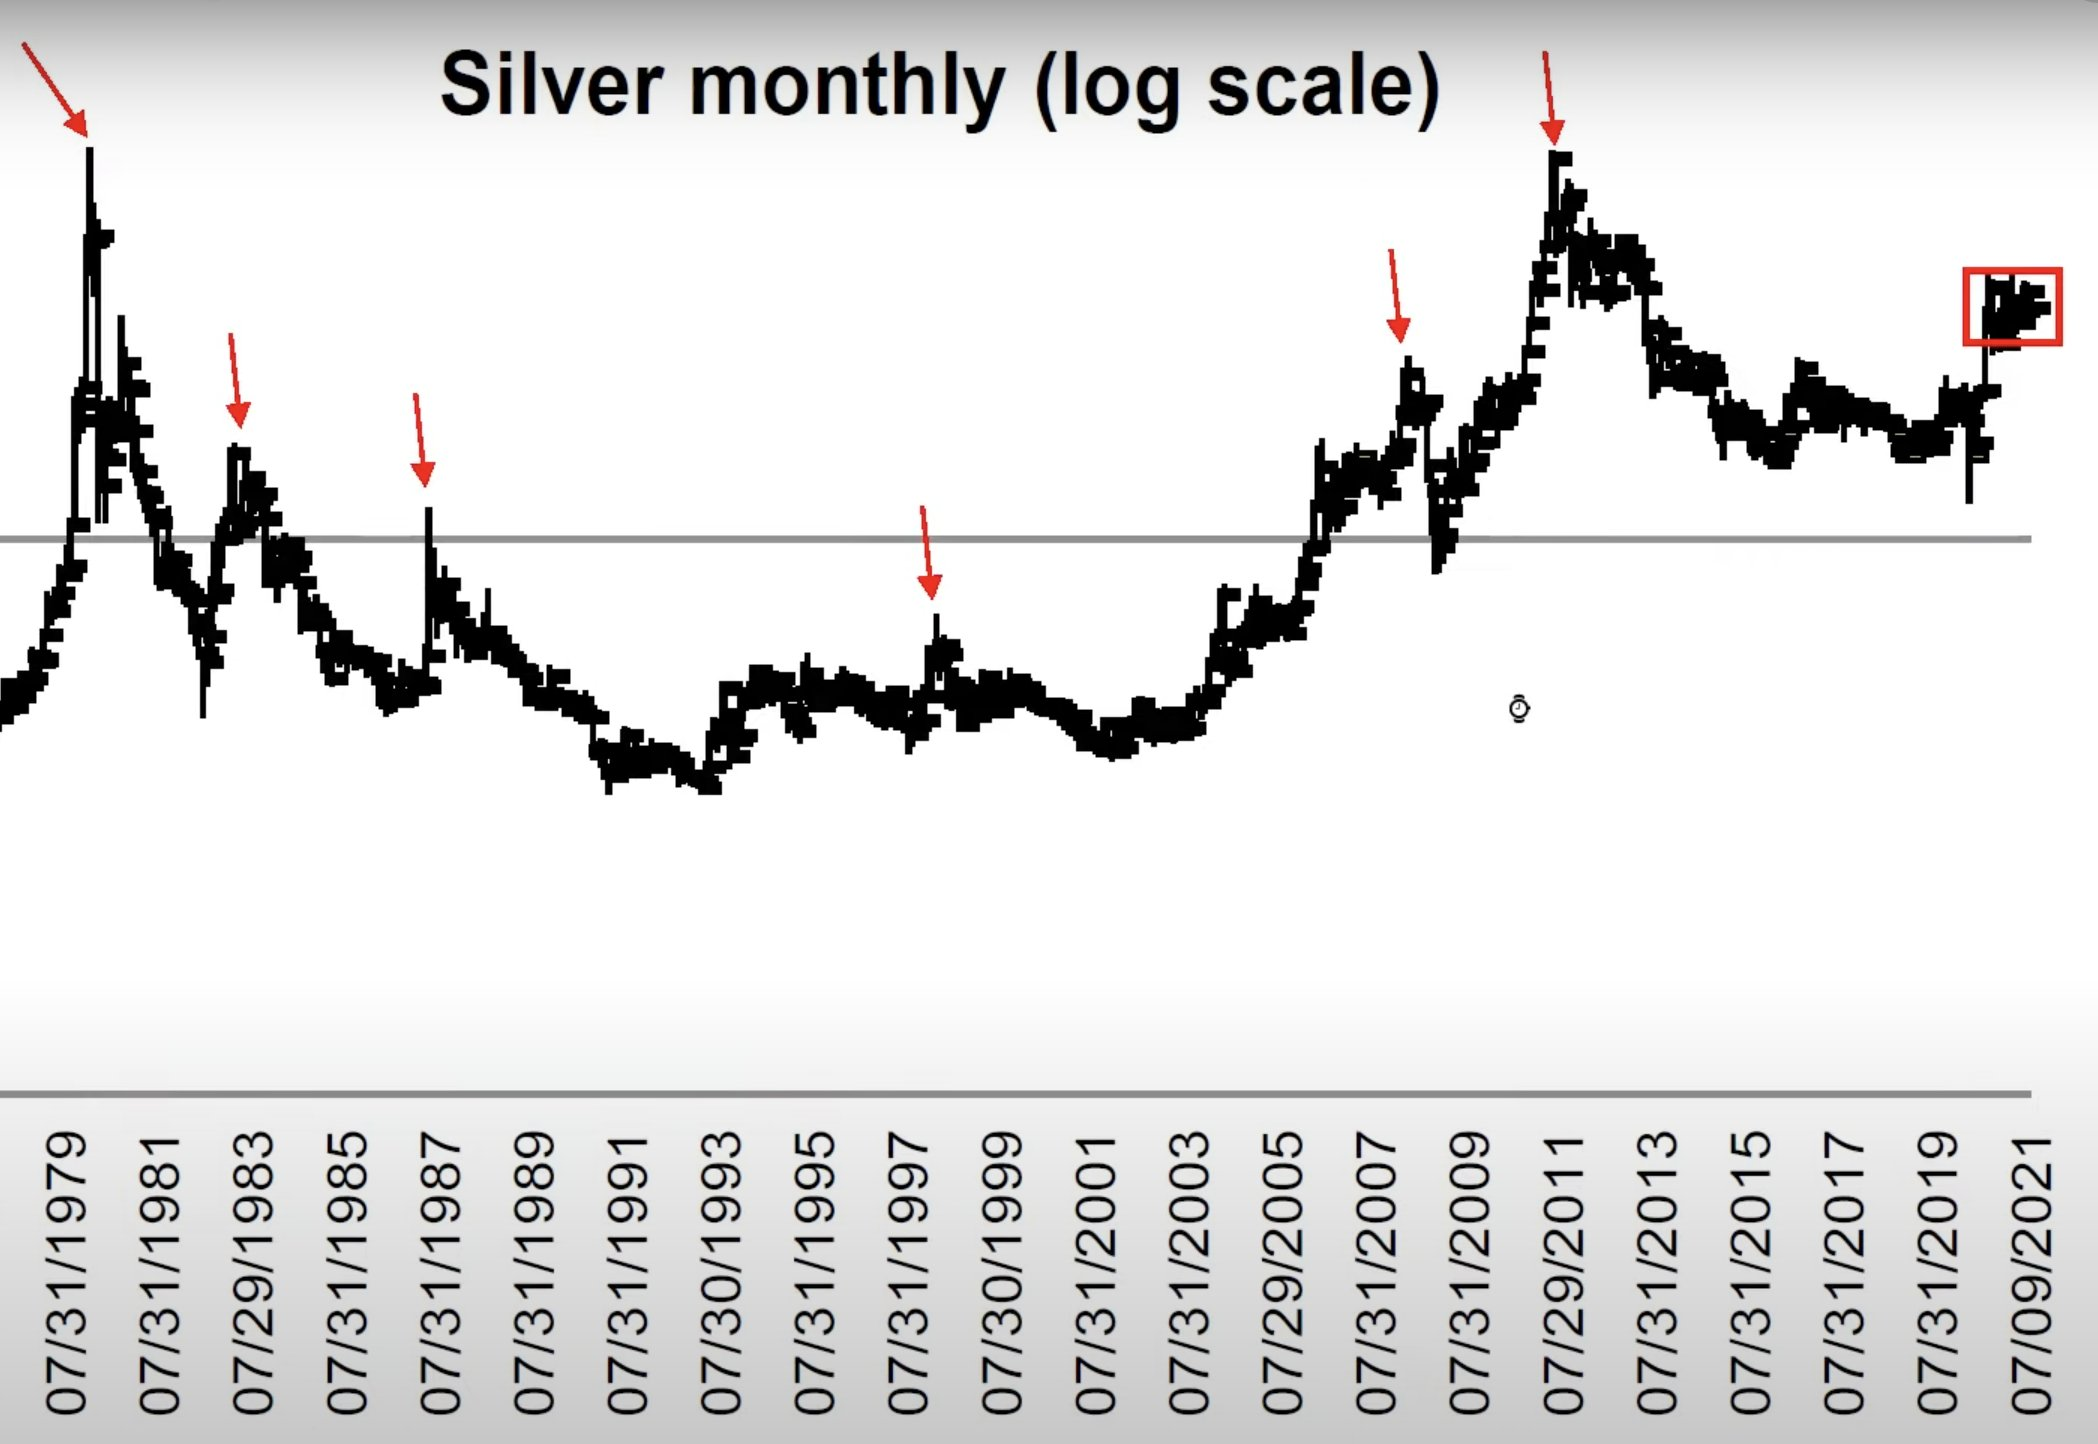 SILVER Technical Analysis Video with Michael Oliver: The Next Bitcoin is Silver!